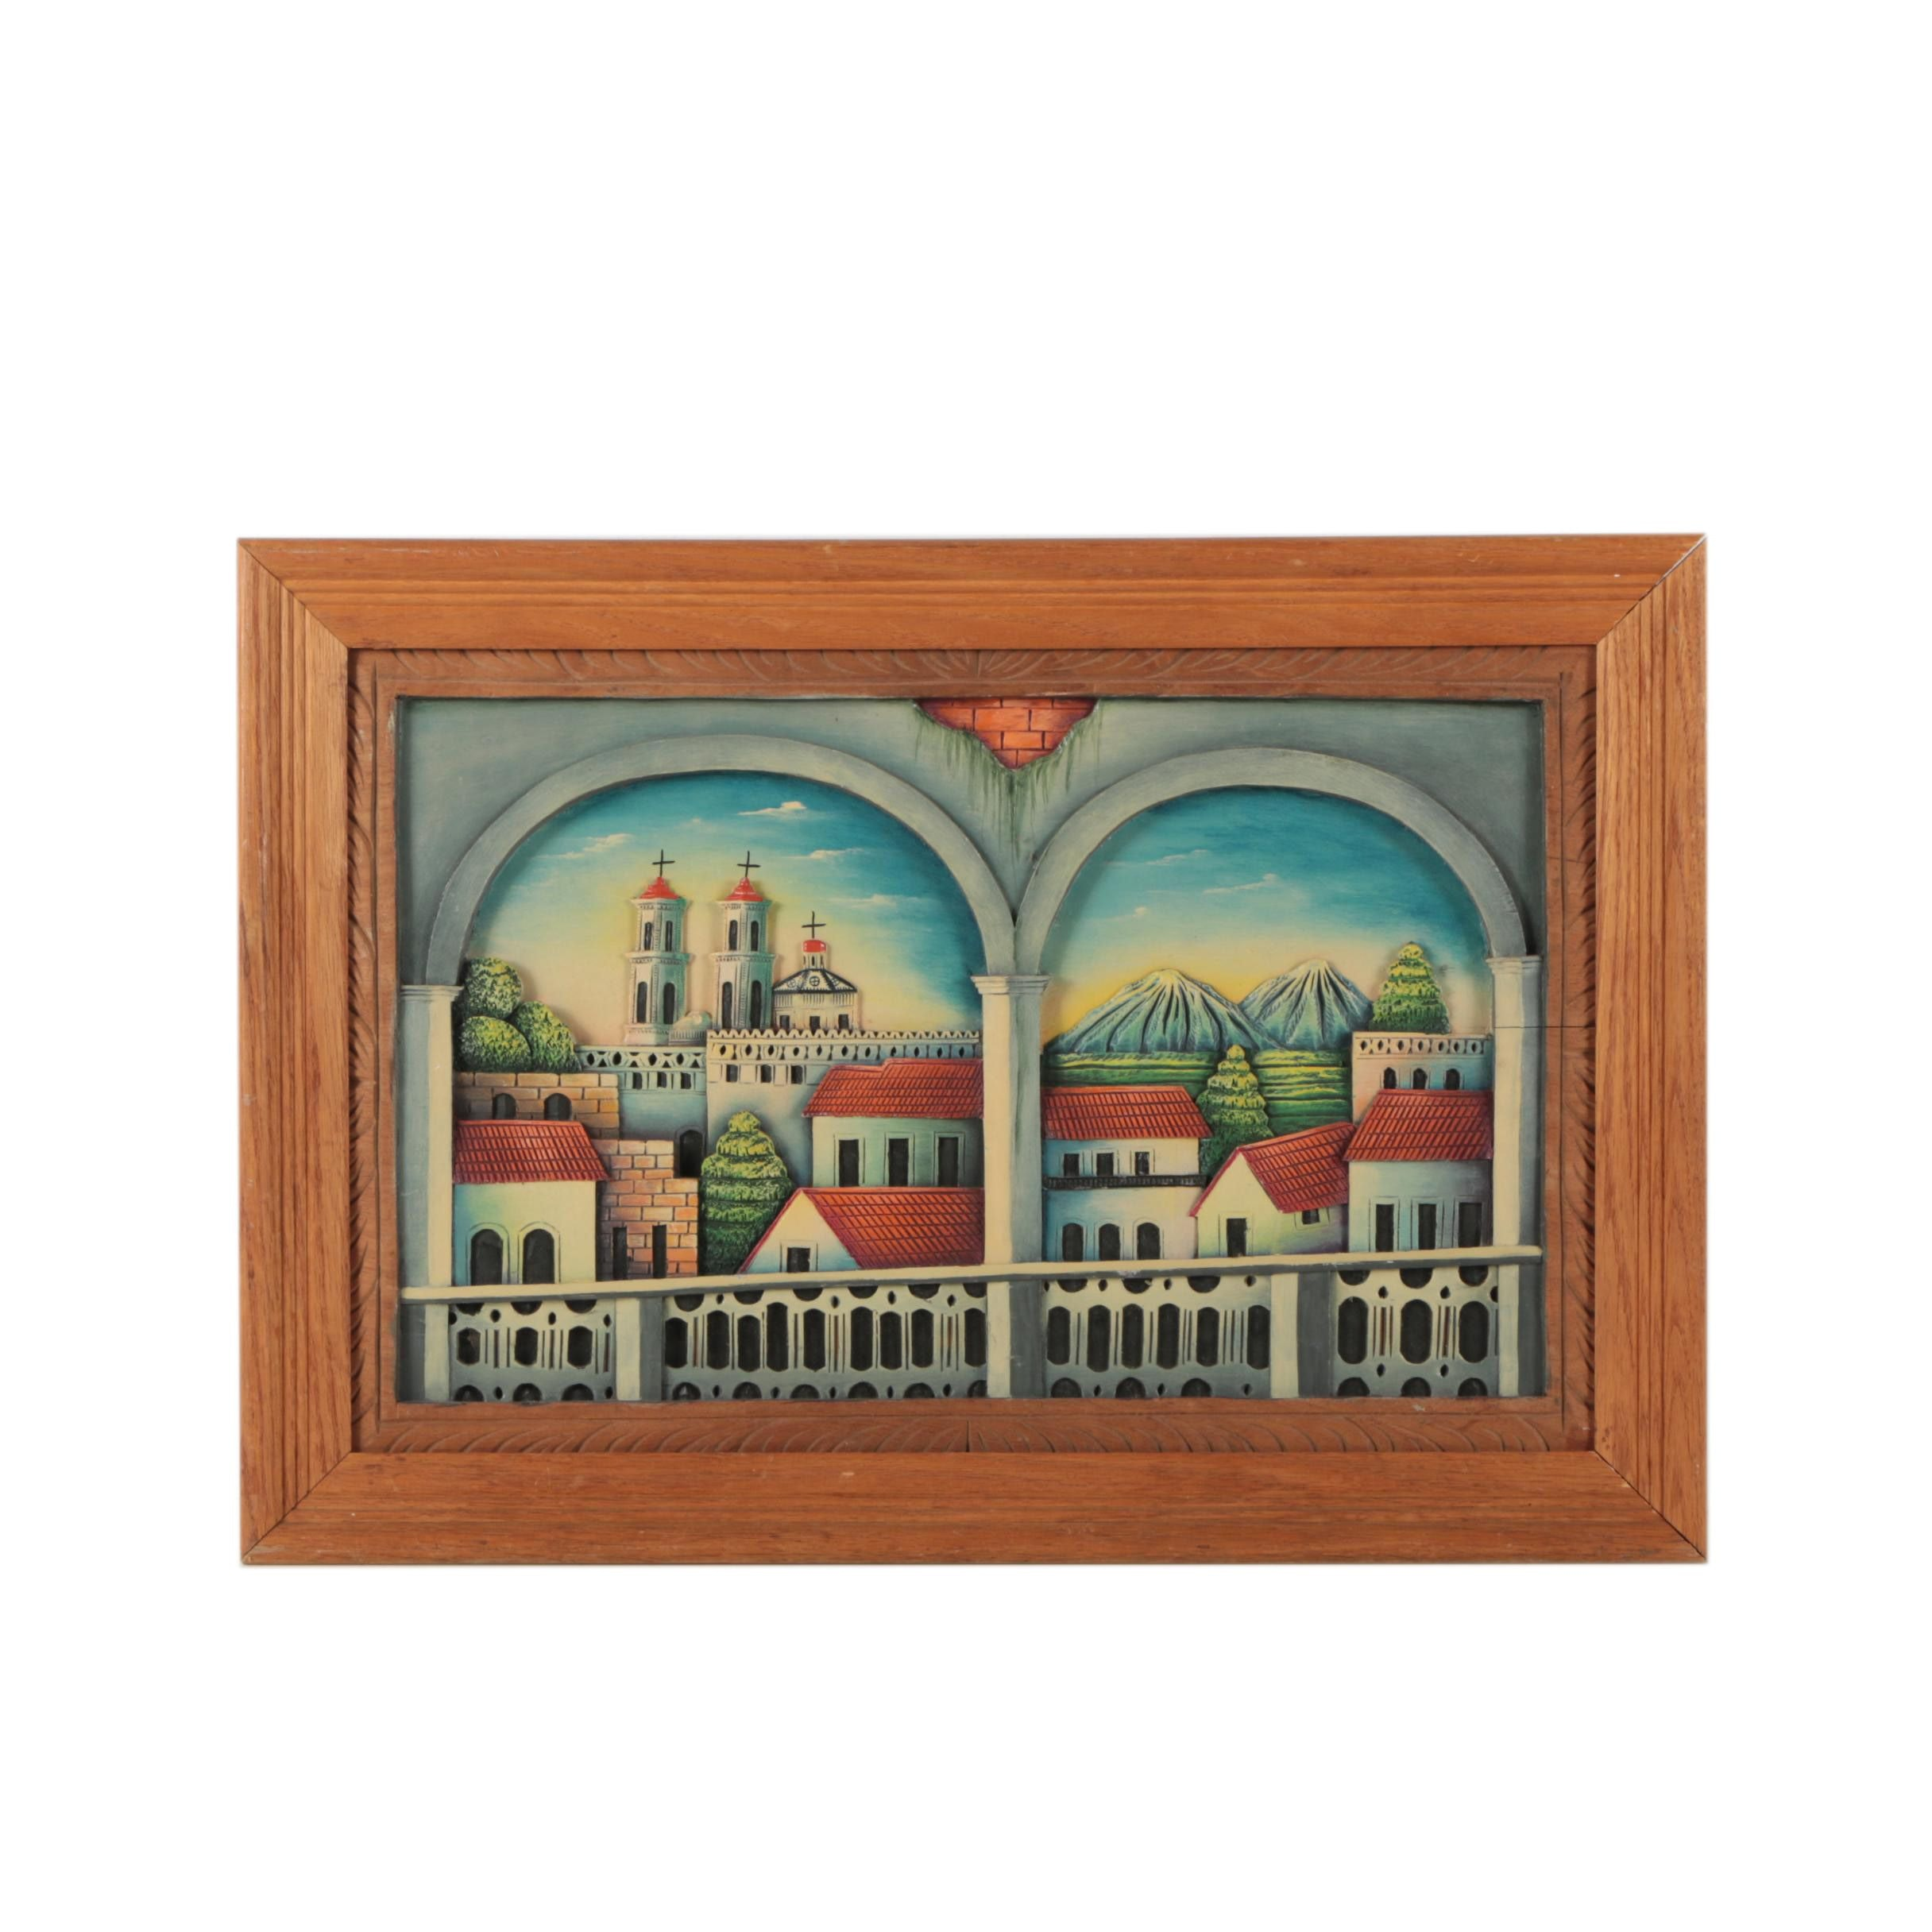 Low Relief Wall Decor of a Spanish Town